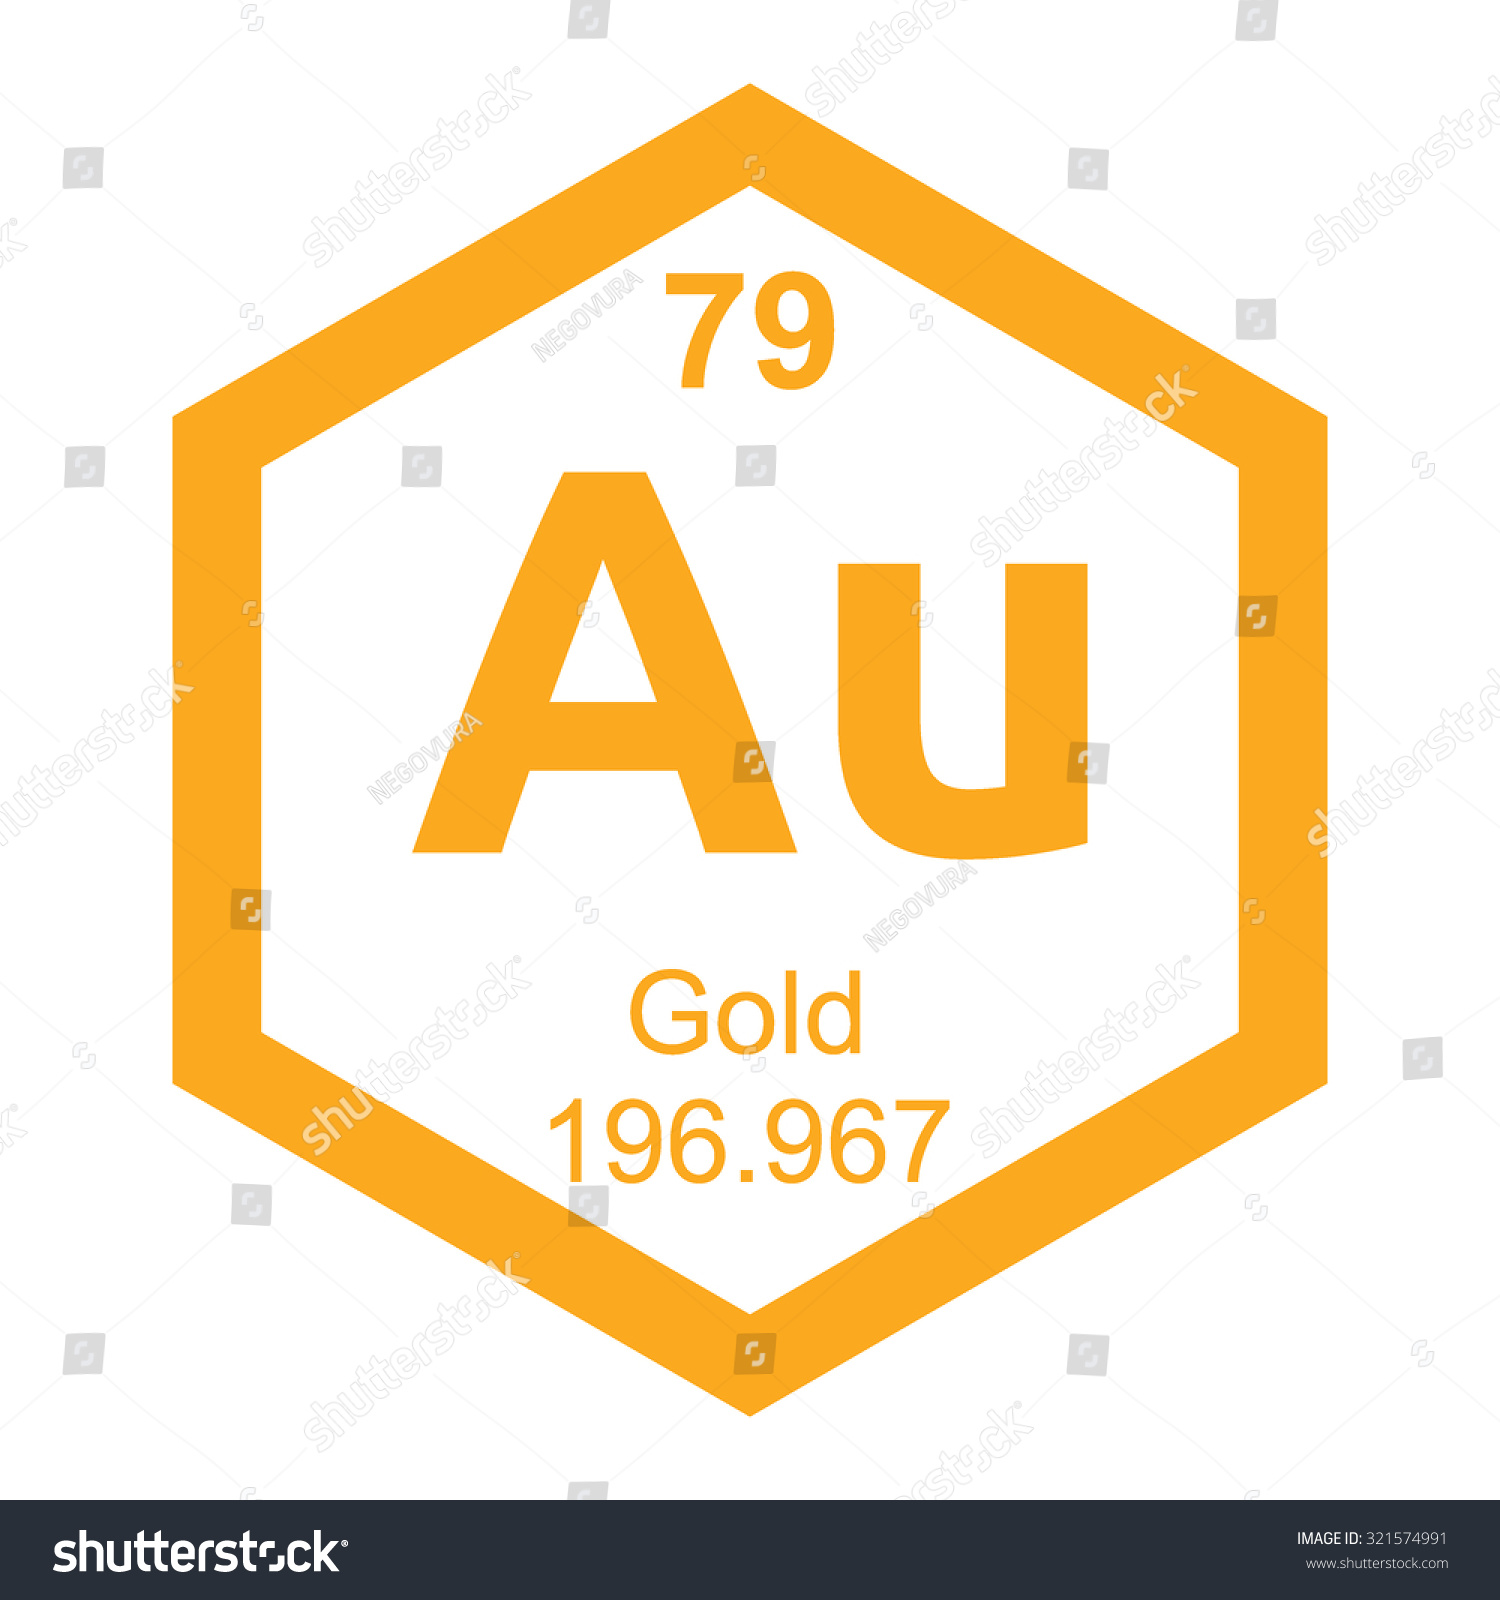 Periodic table gold element stock vector 321574991 shutterstock periodic table gold element gamestrikefo Images